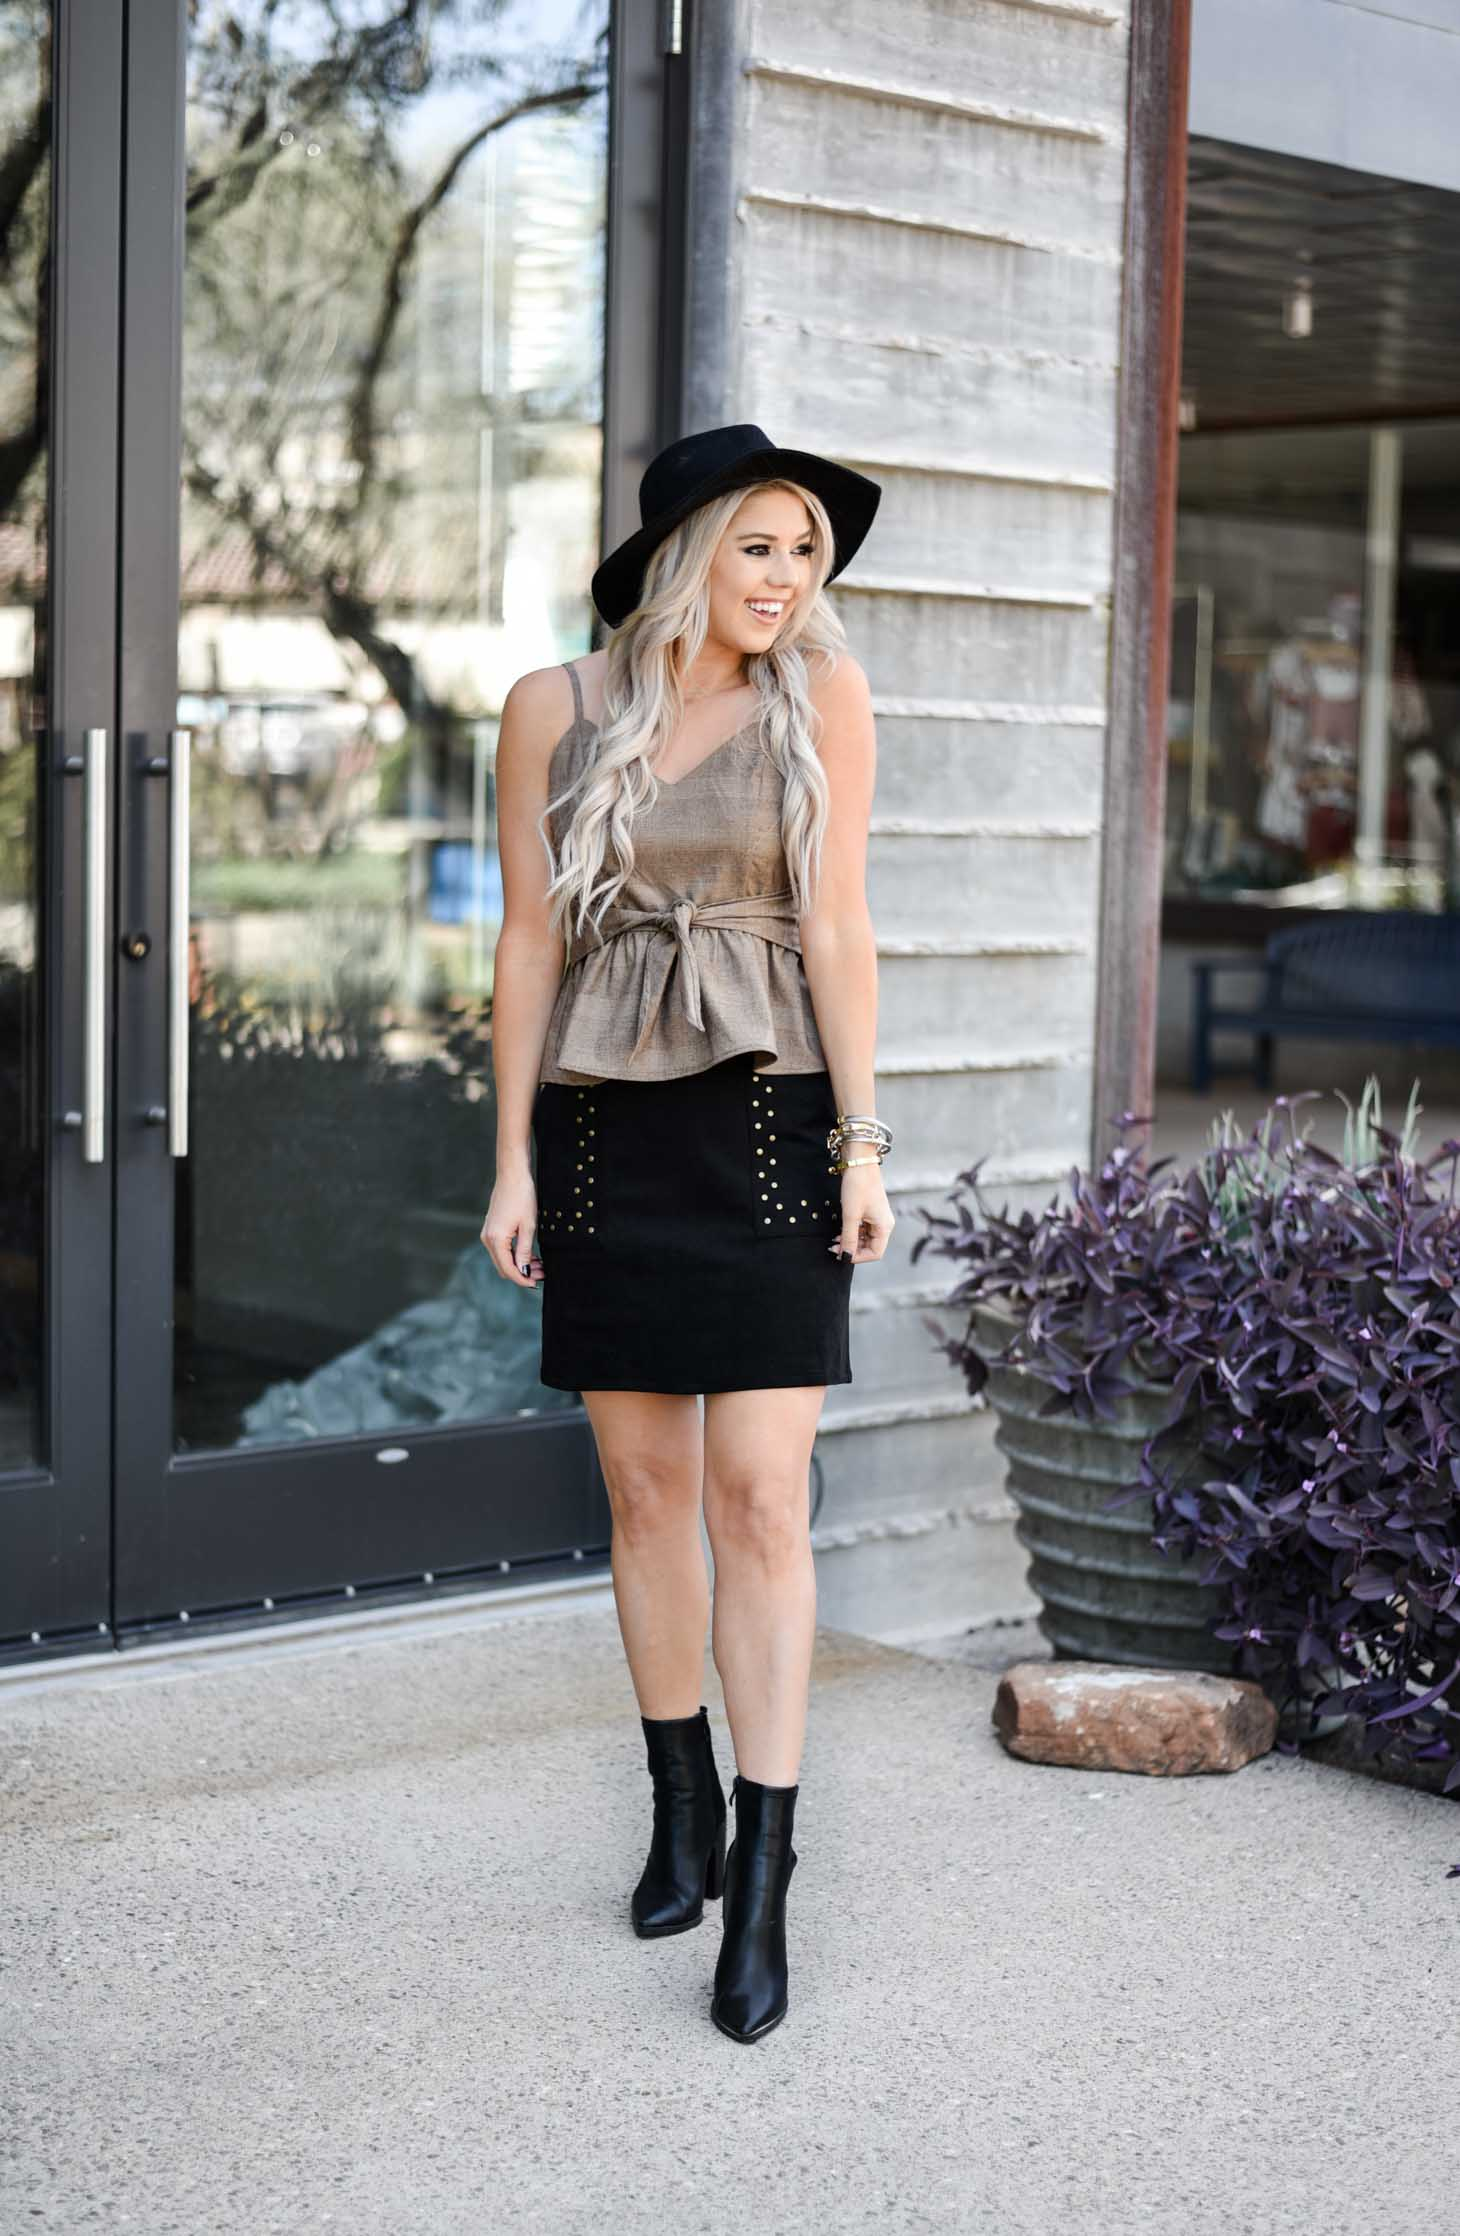 Erin Elizabeth of Wink and a Twirl shares a cute skirt and boot look from Shop Sugar Lips